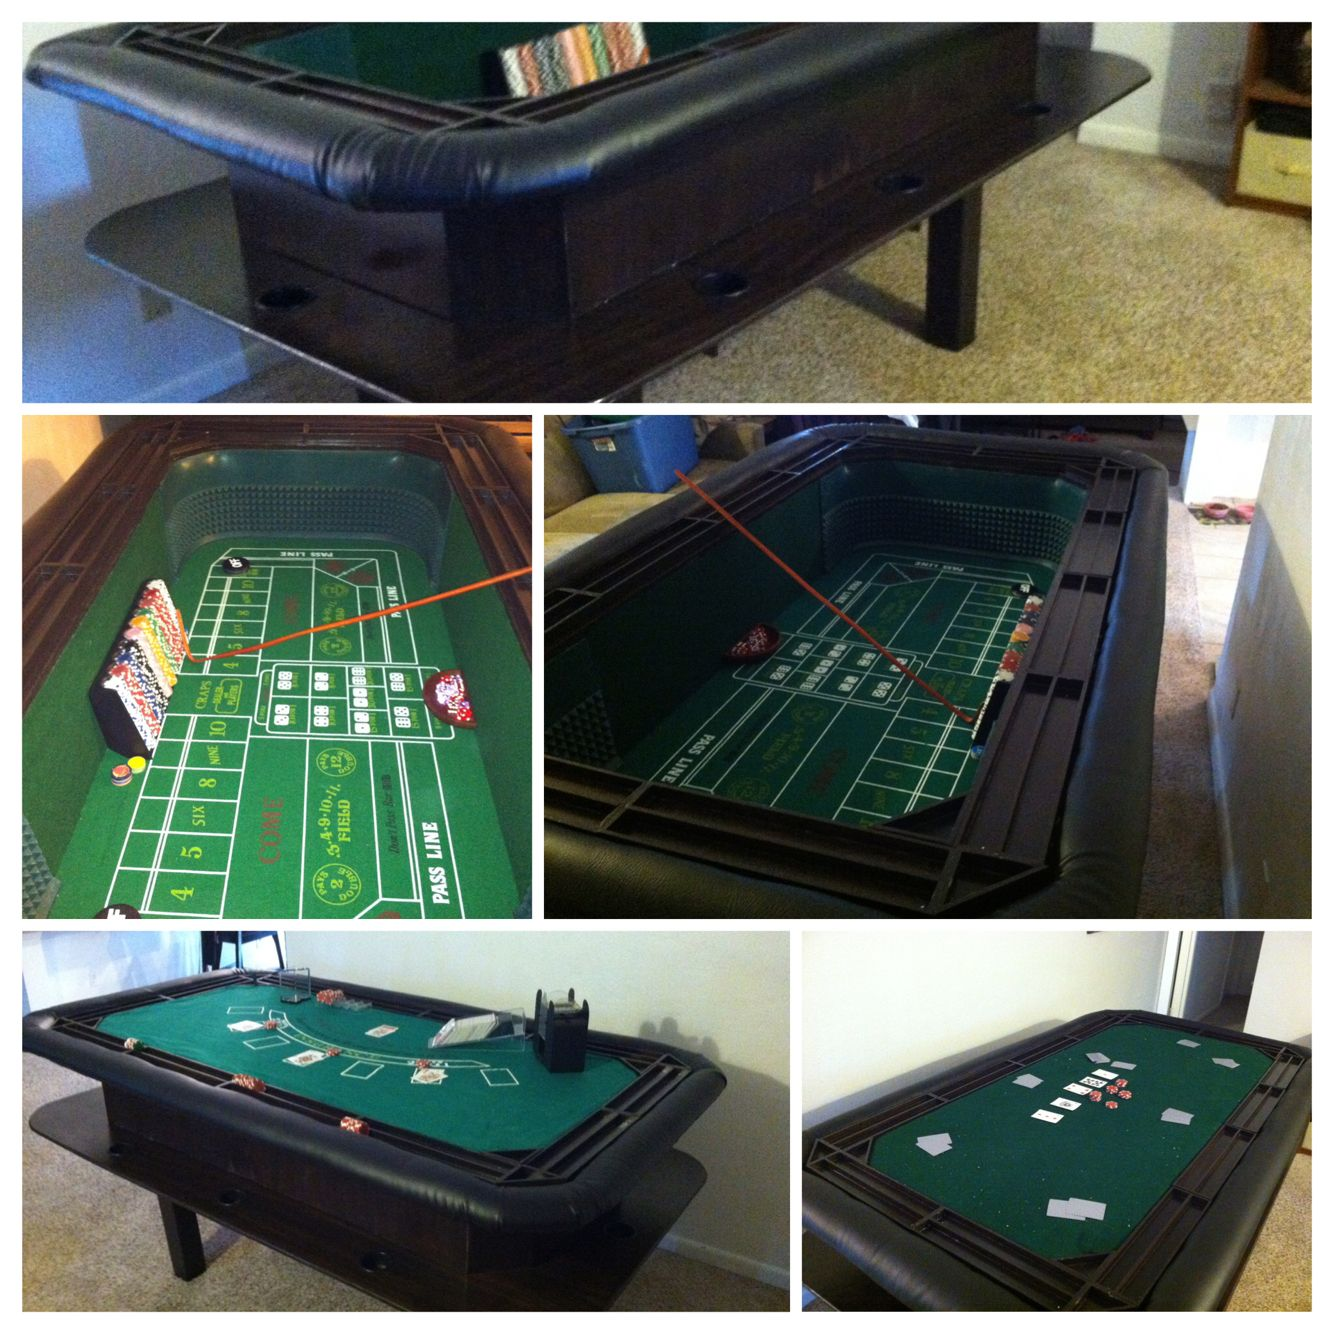 DIY craps/game table, ultimate man cave game table